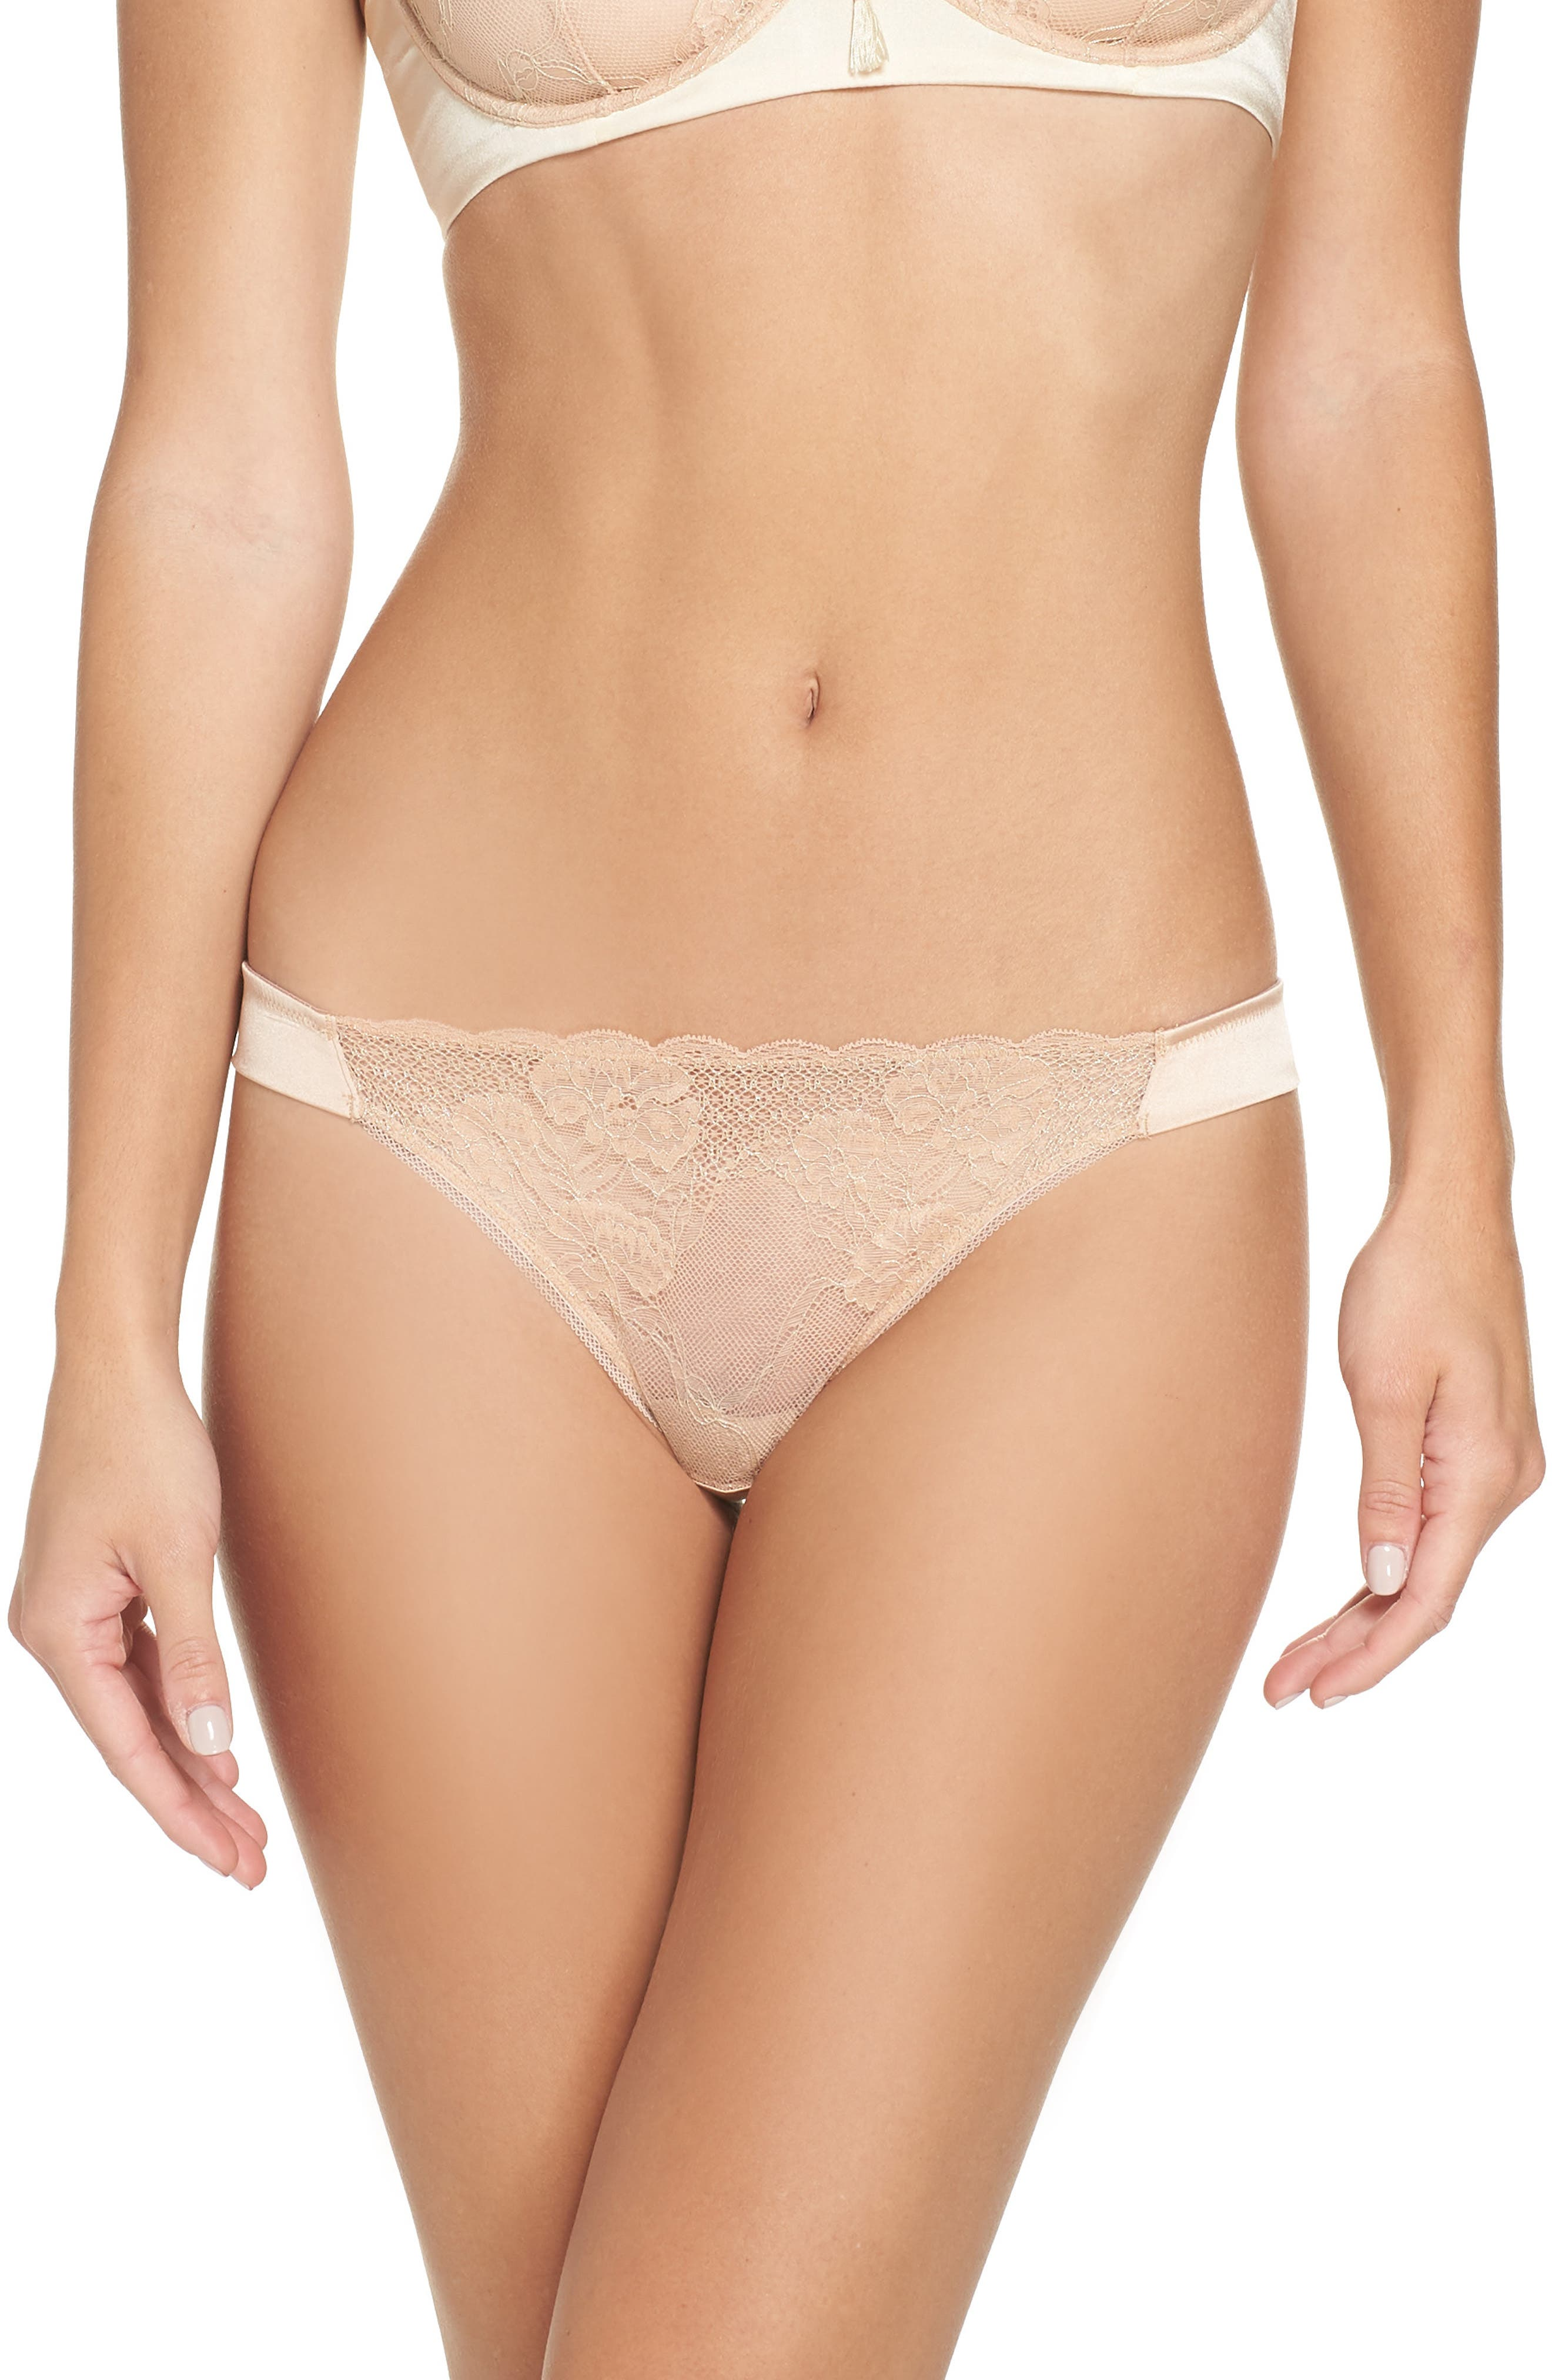 ADDICTION NOUVELLE LINGERIE Lace & Satin Brazilian Panties in Nude